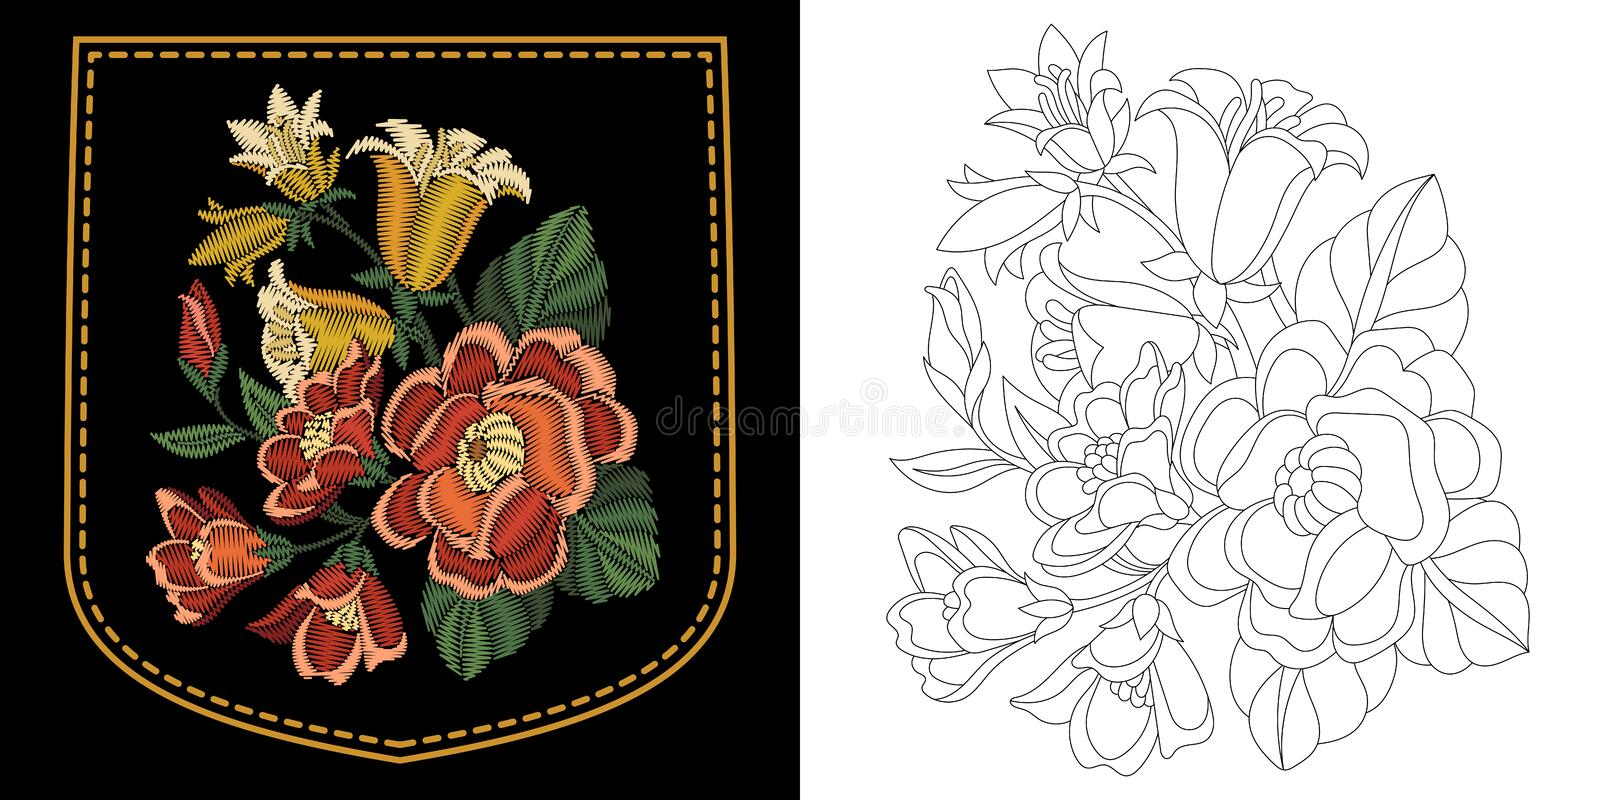 Embroidery floral design royalty free stock photo